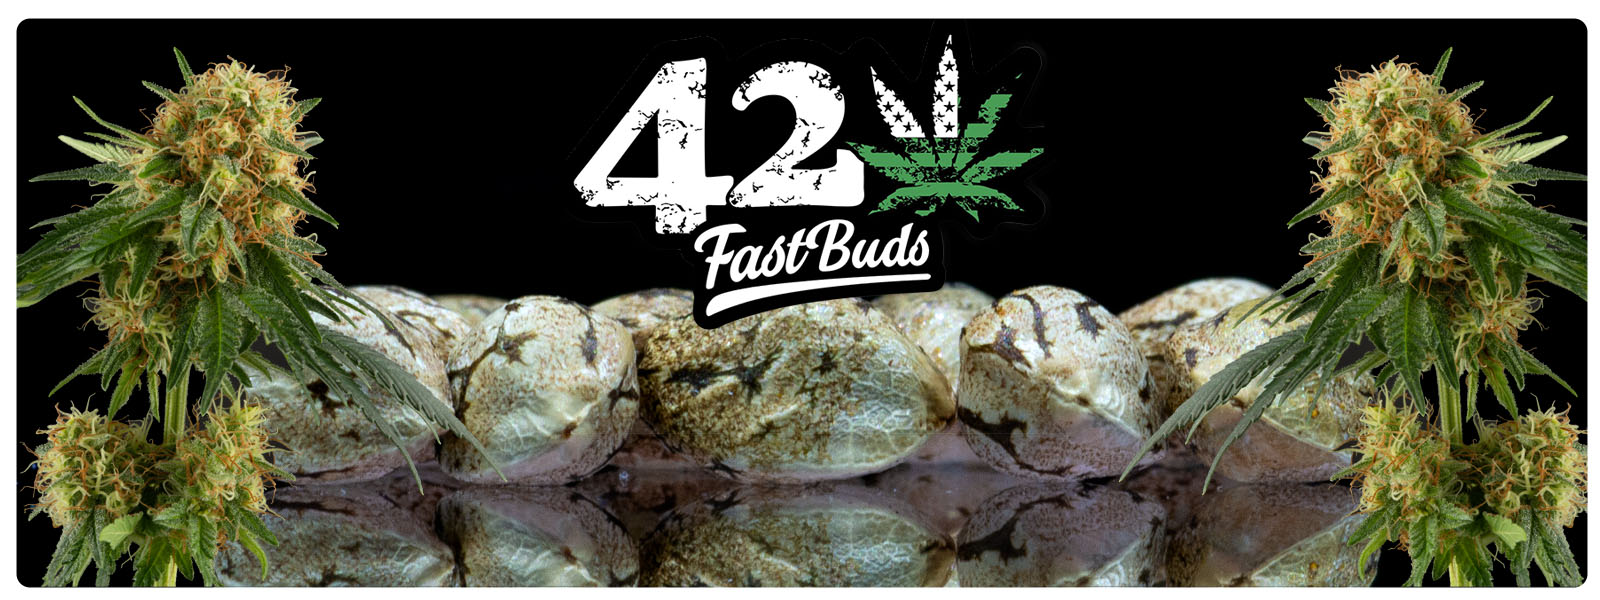 Fastbud feminized auto flower seeds